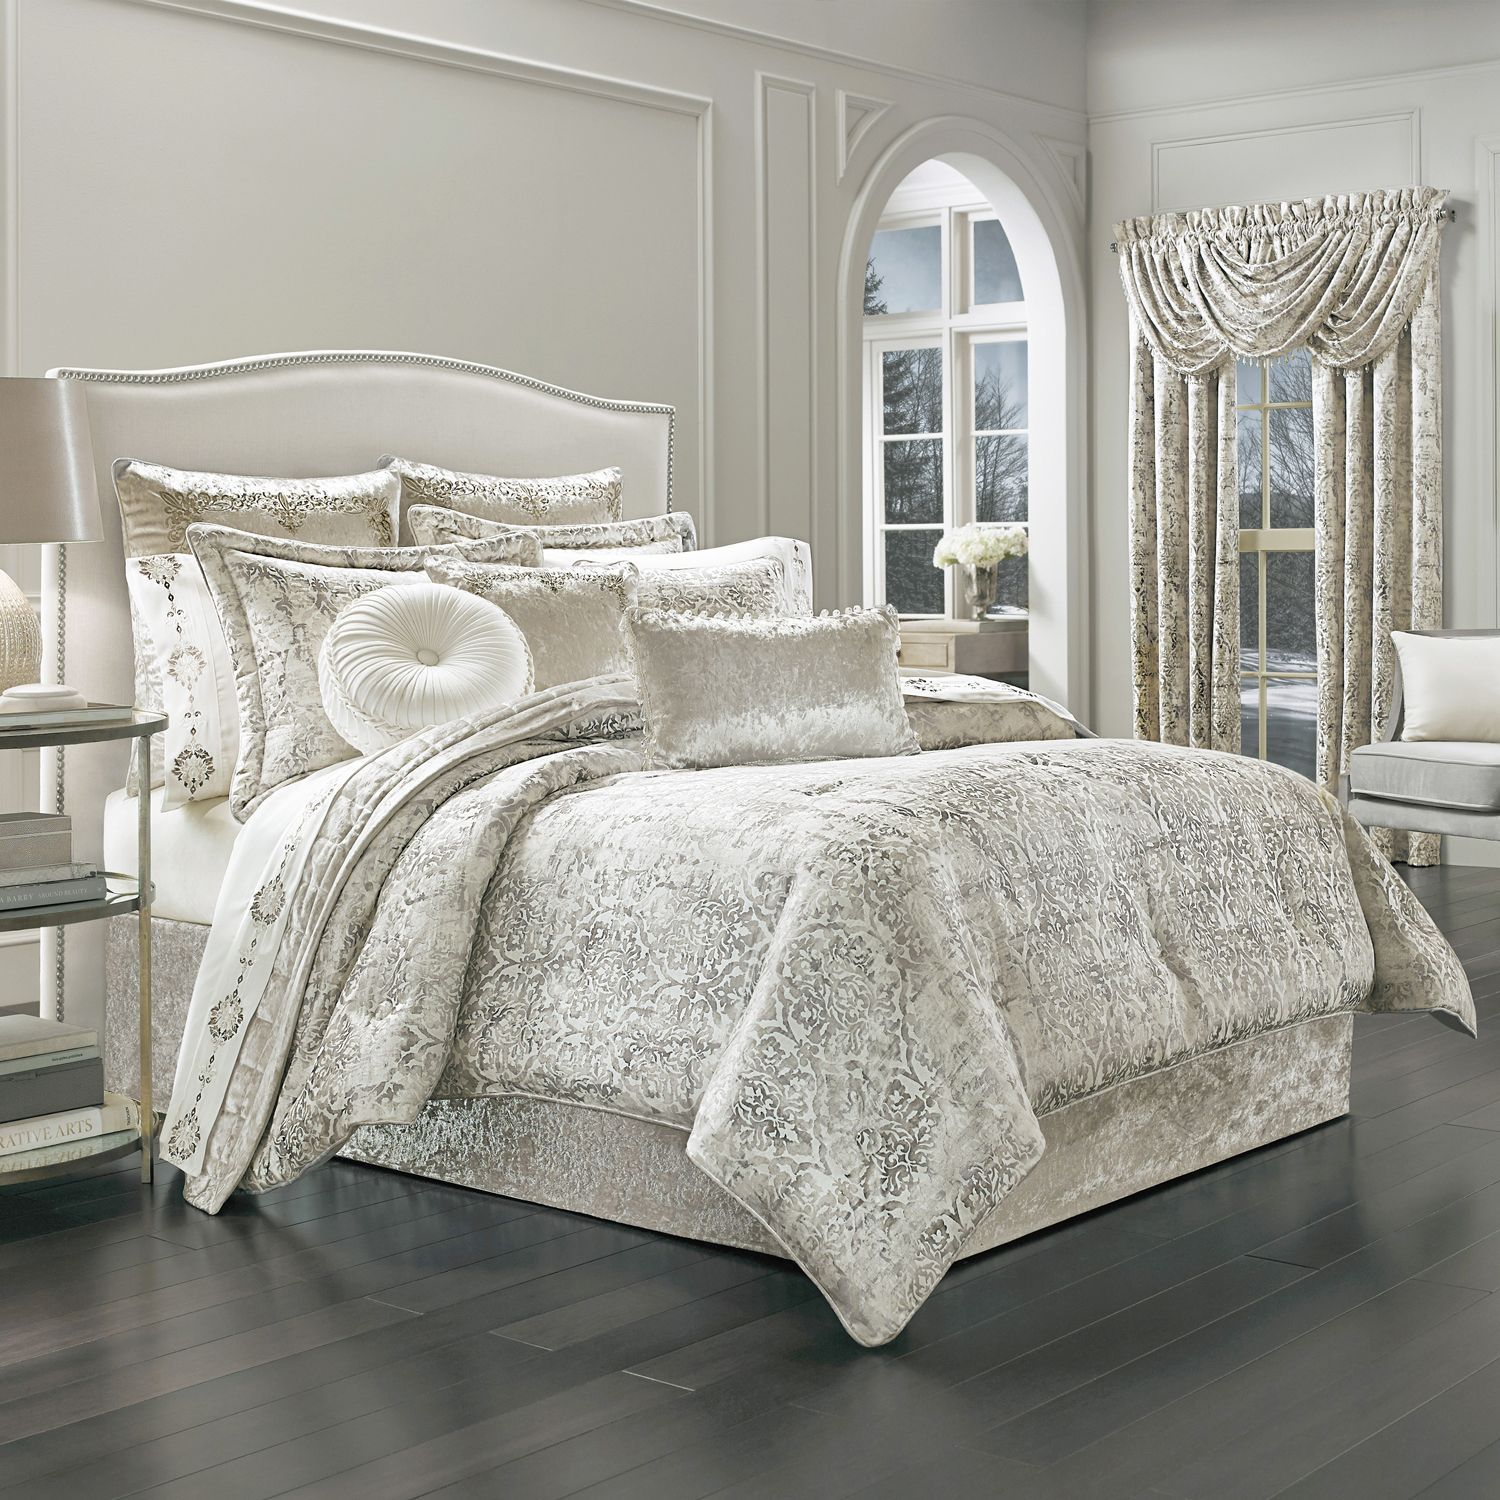 Dawson California King Comforter Set Luxury comforter